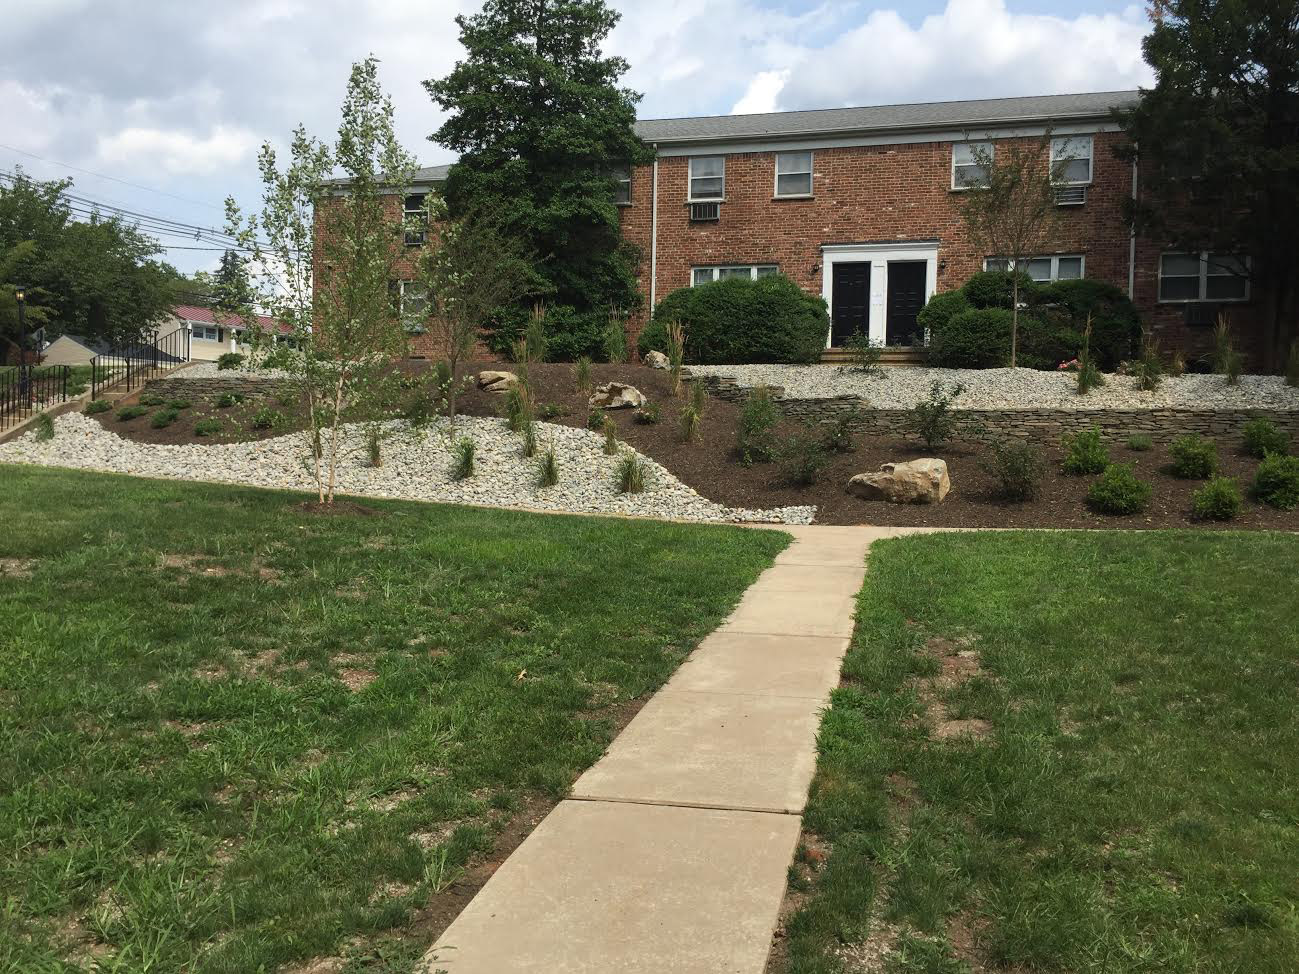 Apartments for Rent at Grandview Gardens Apartments in Edison, New Jersey